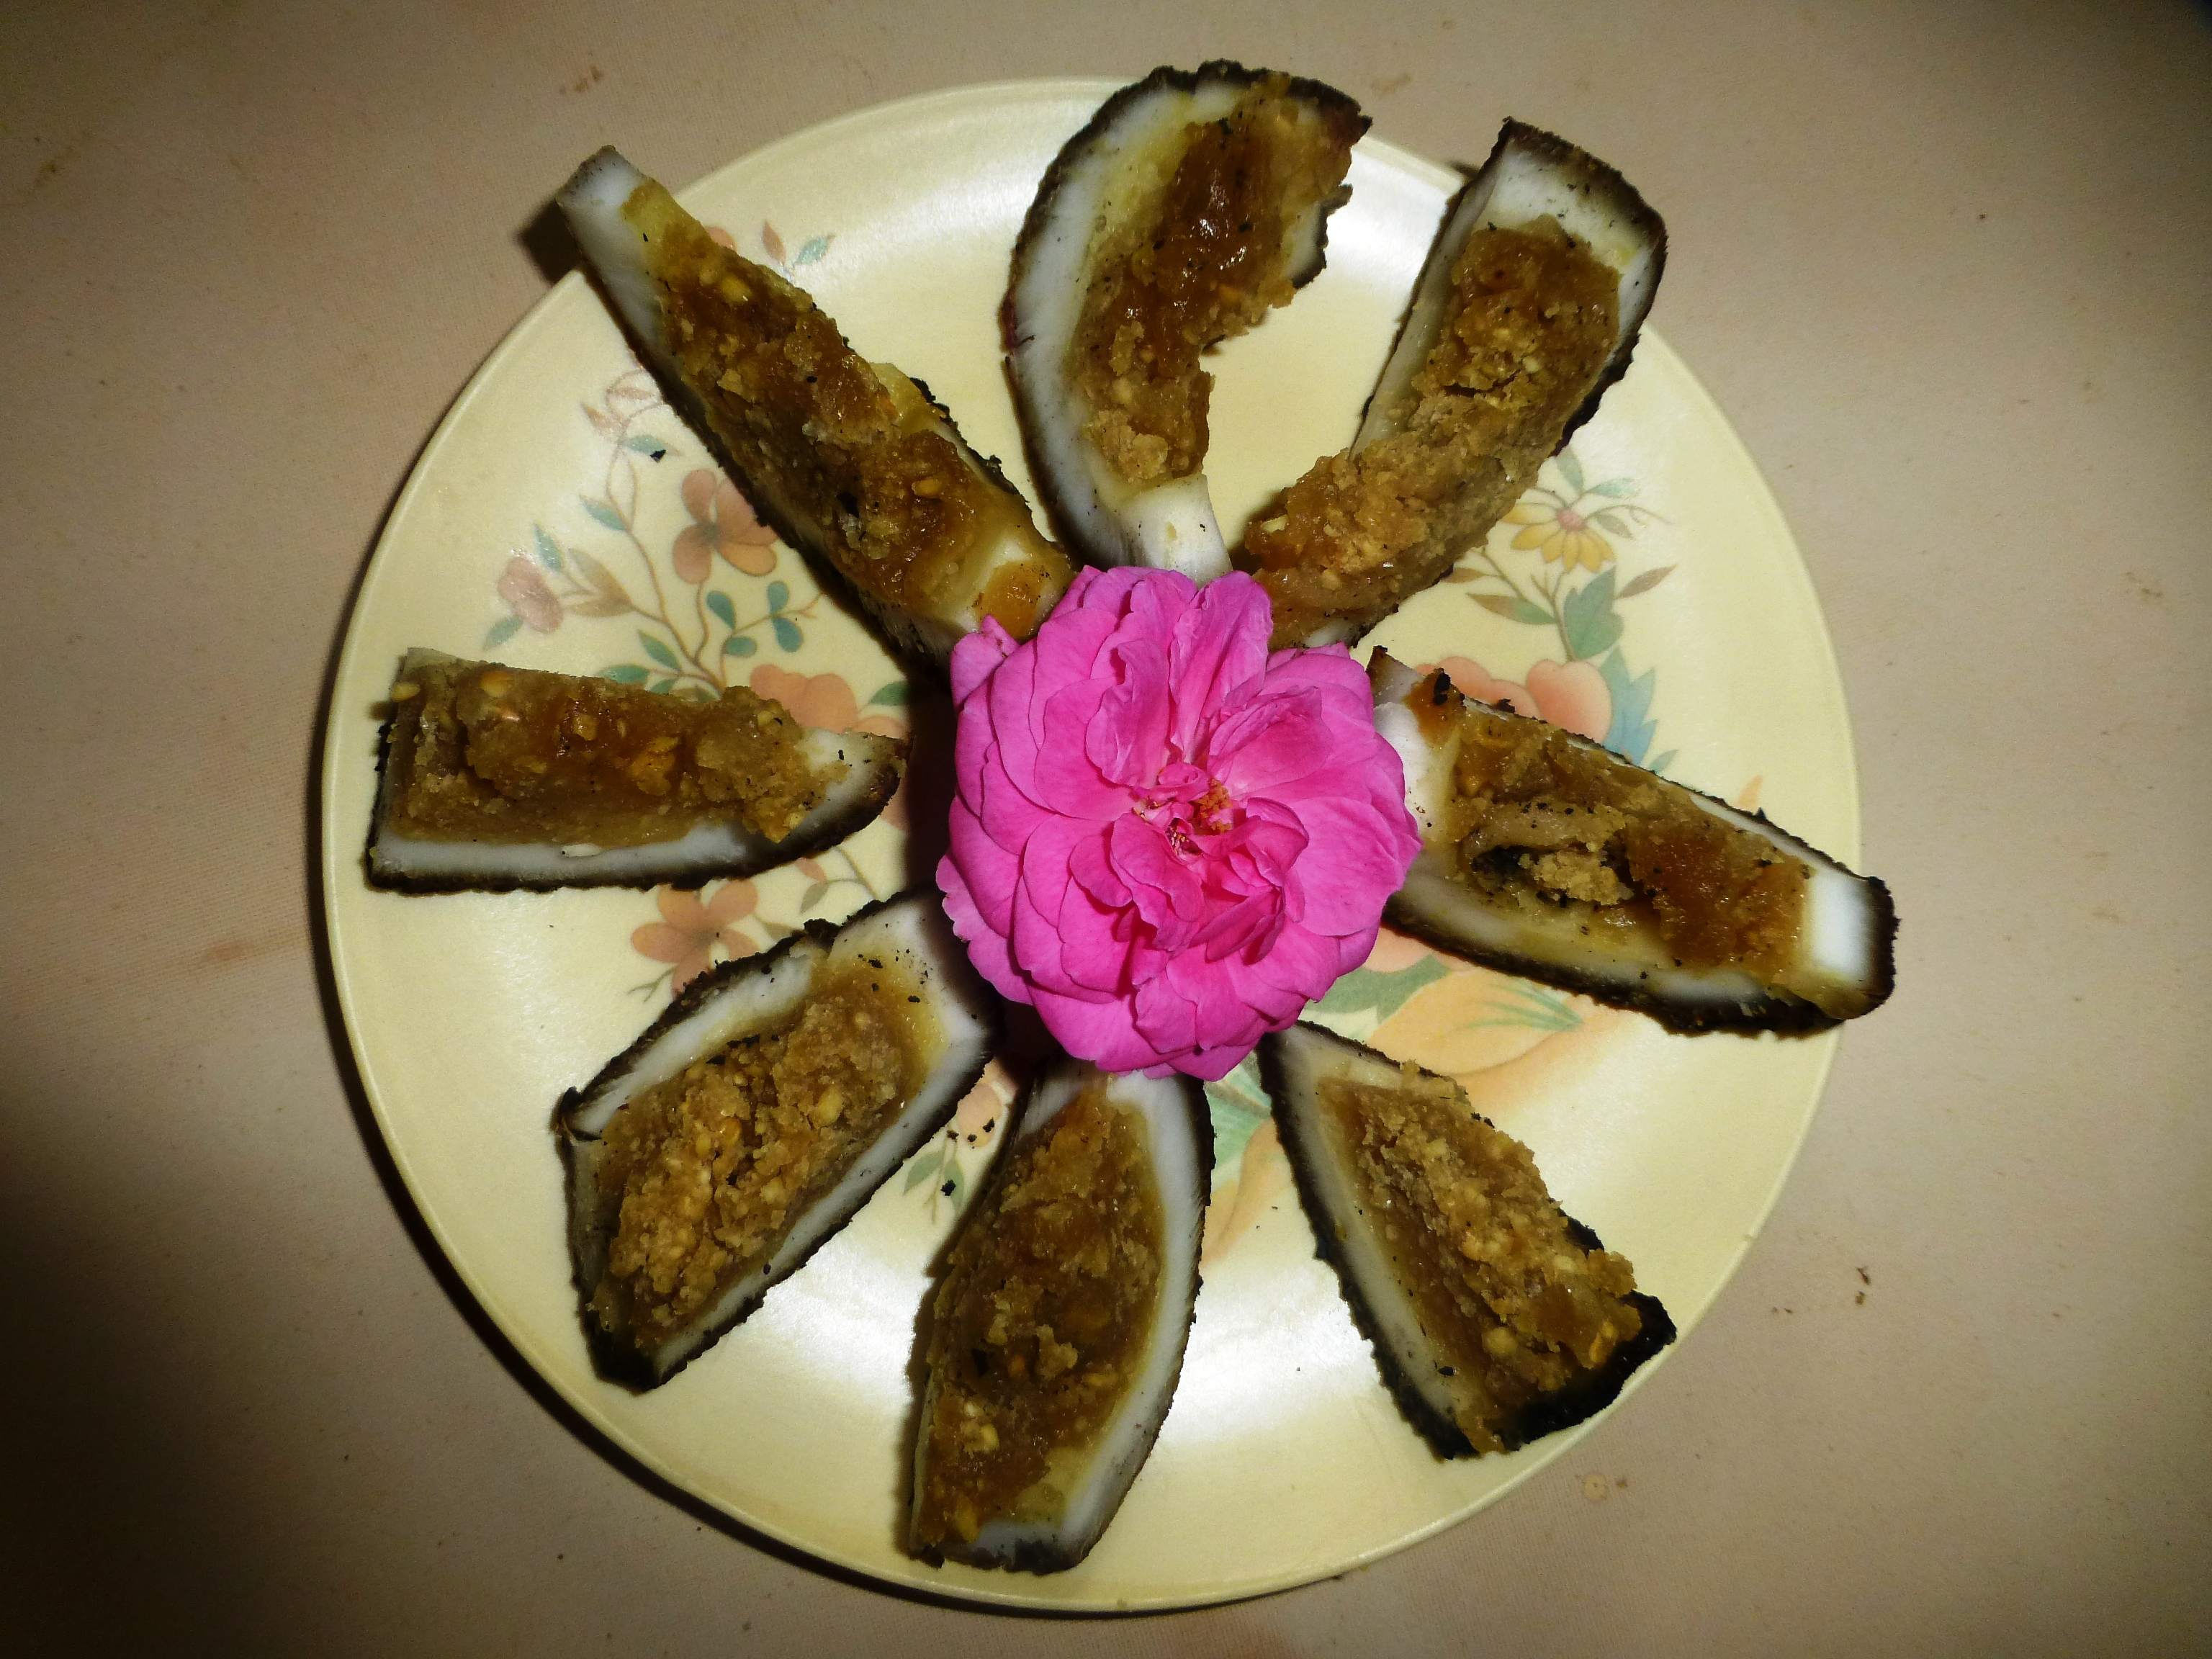 Barbecued Stuffed Coconut